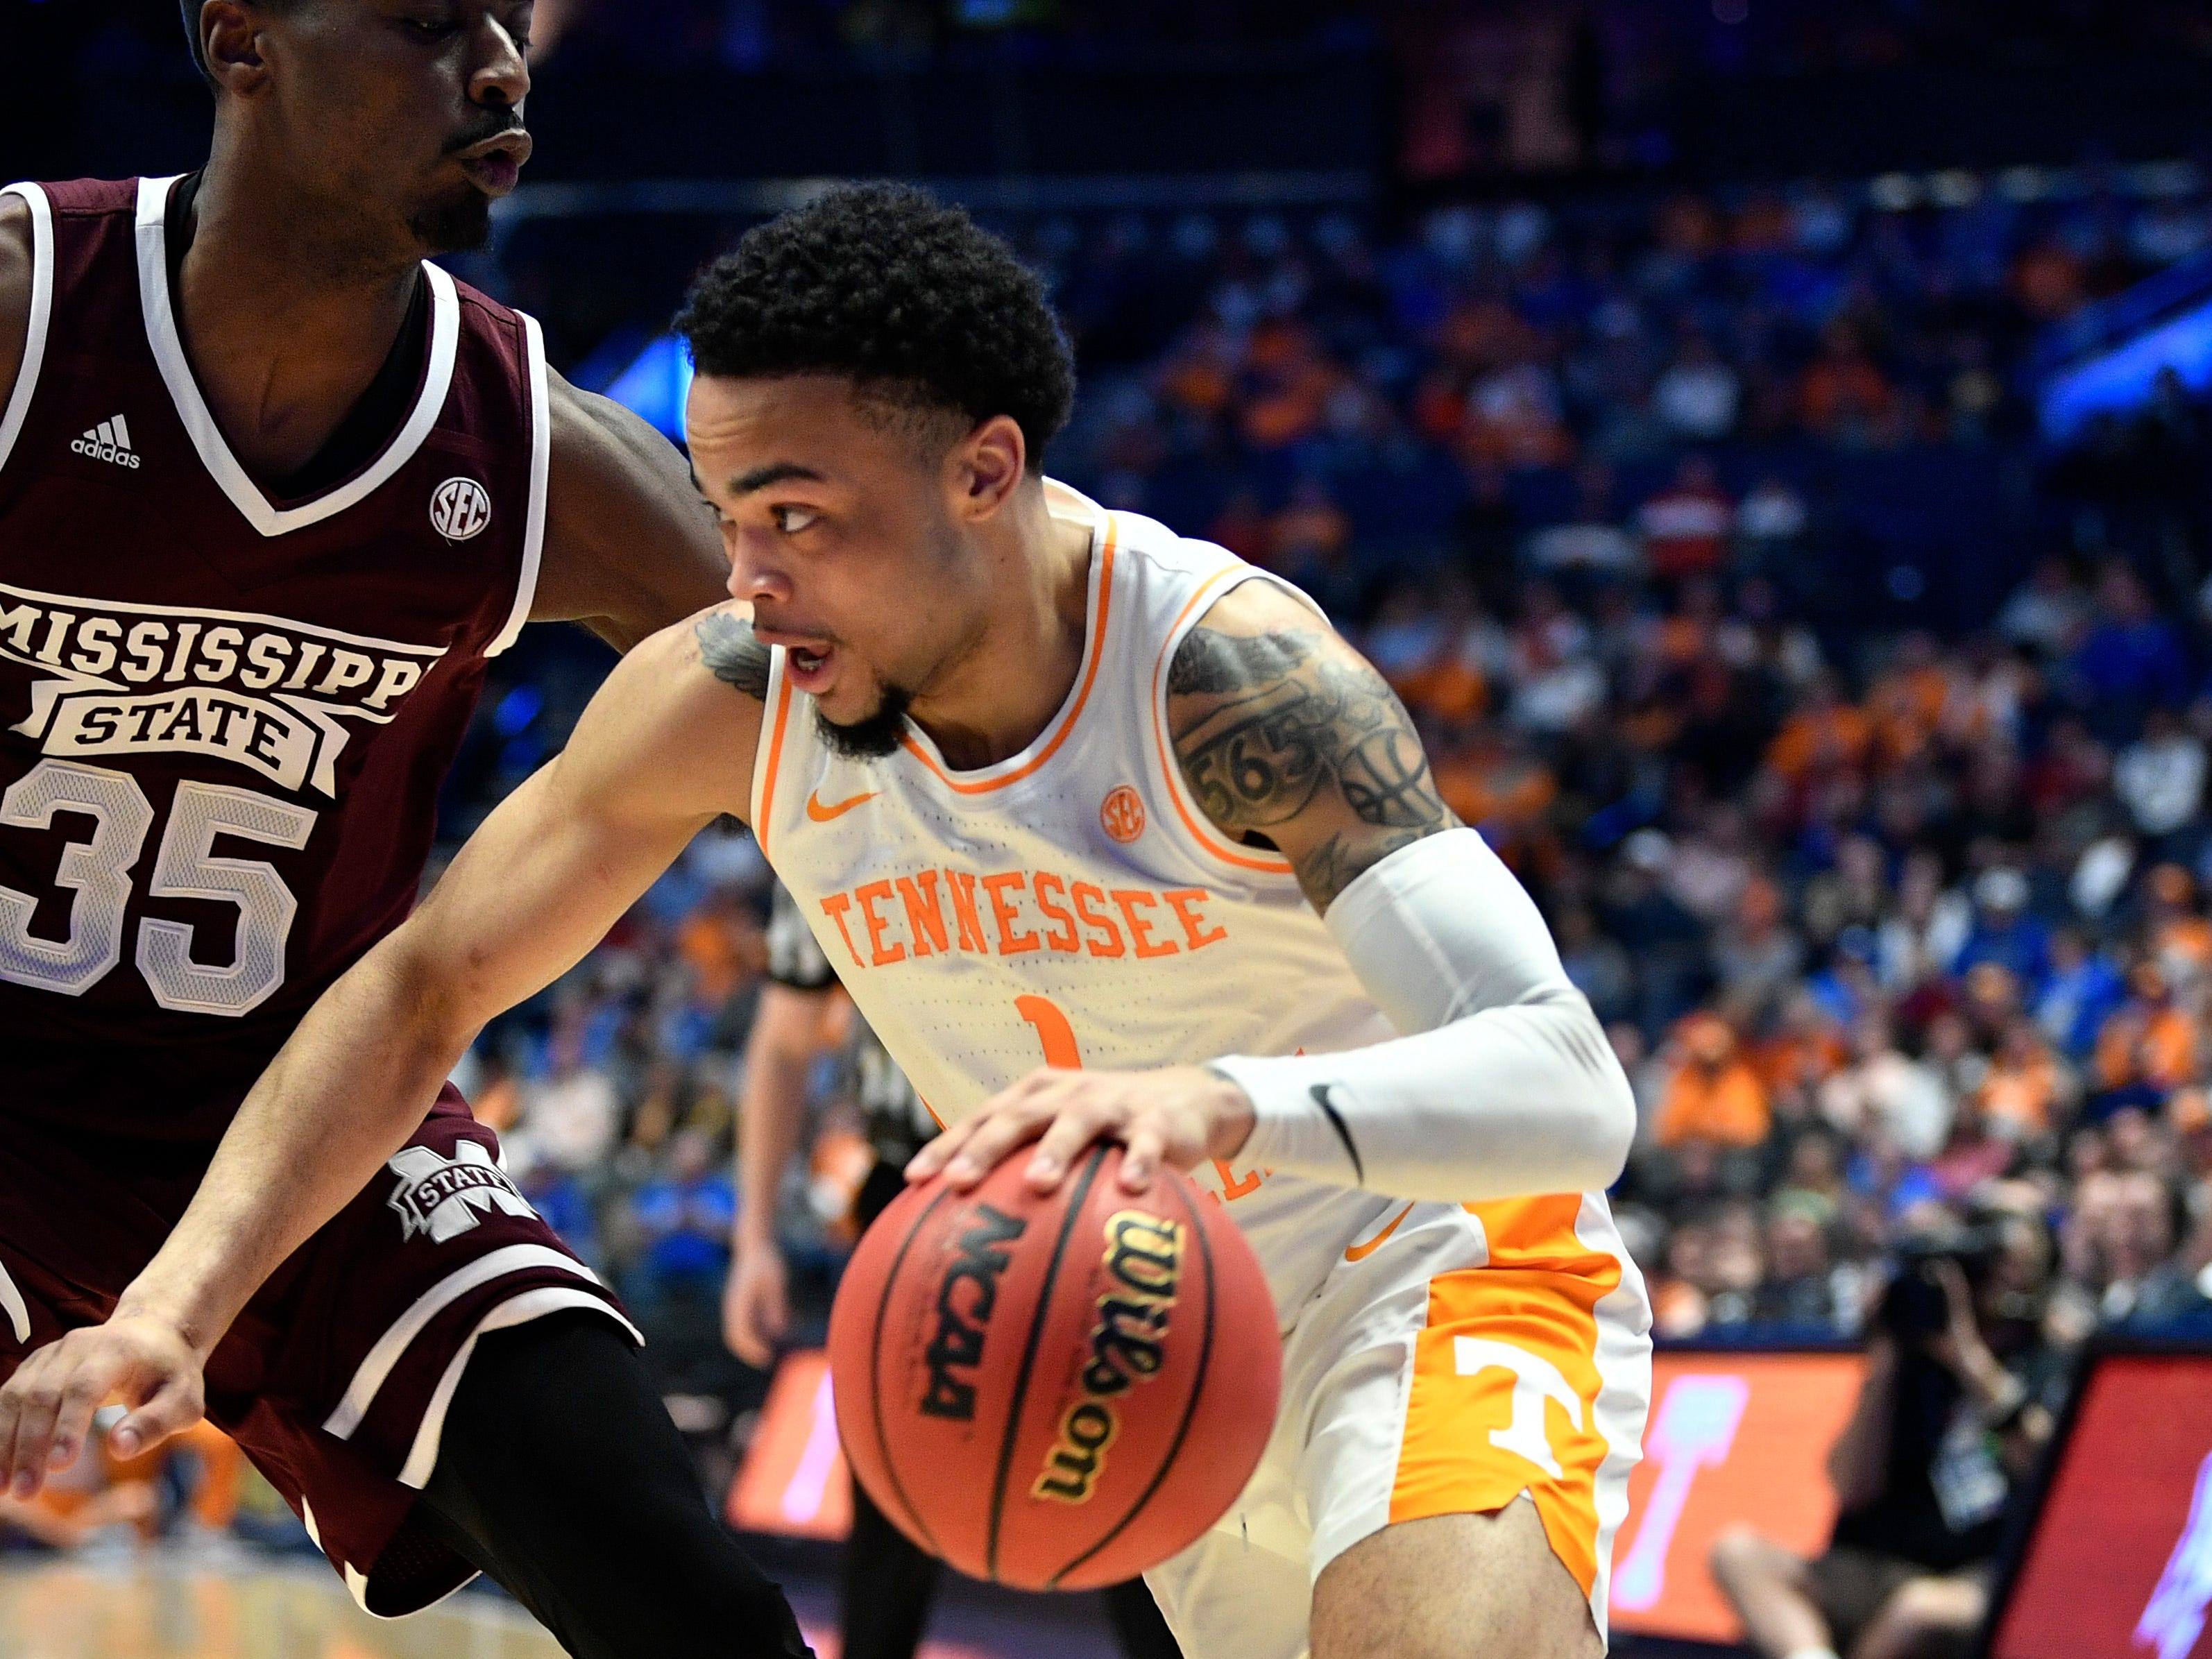 Tennessee guard Lamonte Turner (1) moves the ball defended by Mississippi State forward Aric Holman (35) during the first half of the SEC Men's Basketball Tournament game at Bridgestone Arena in Nashville, Tenn., Friday, March 15, 2019.